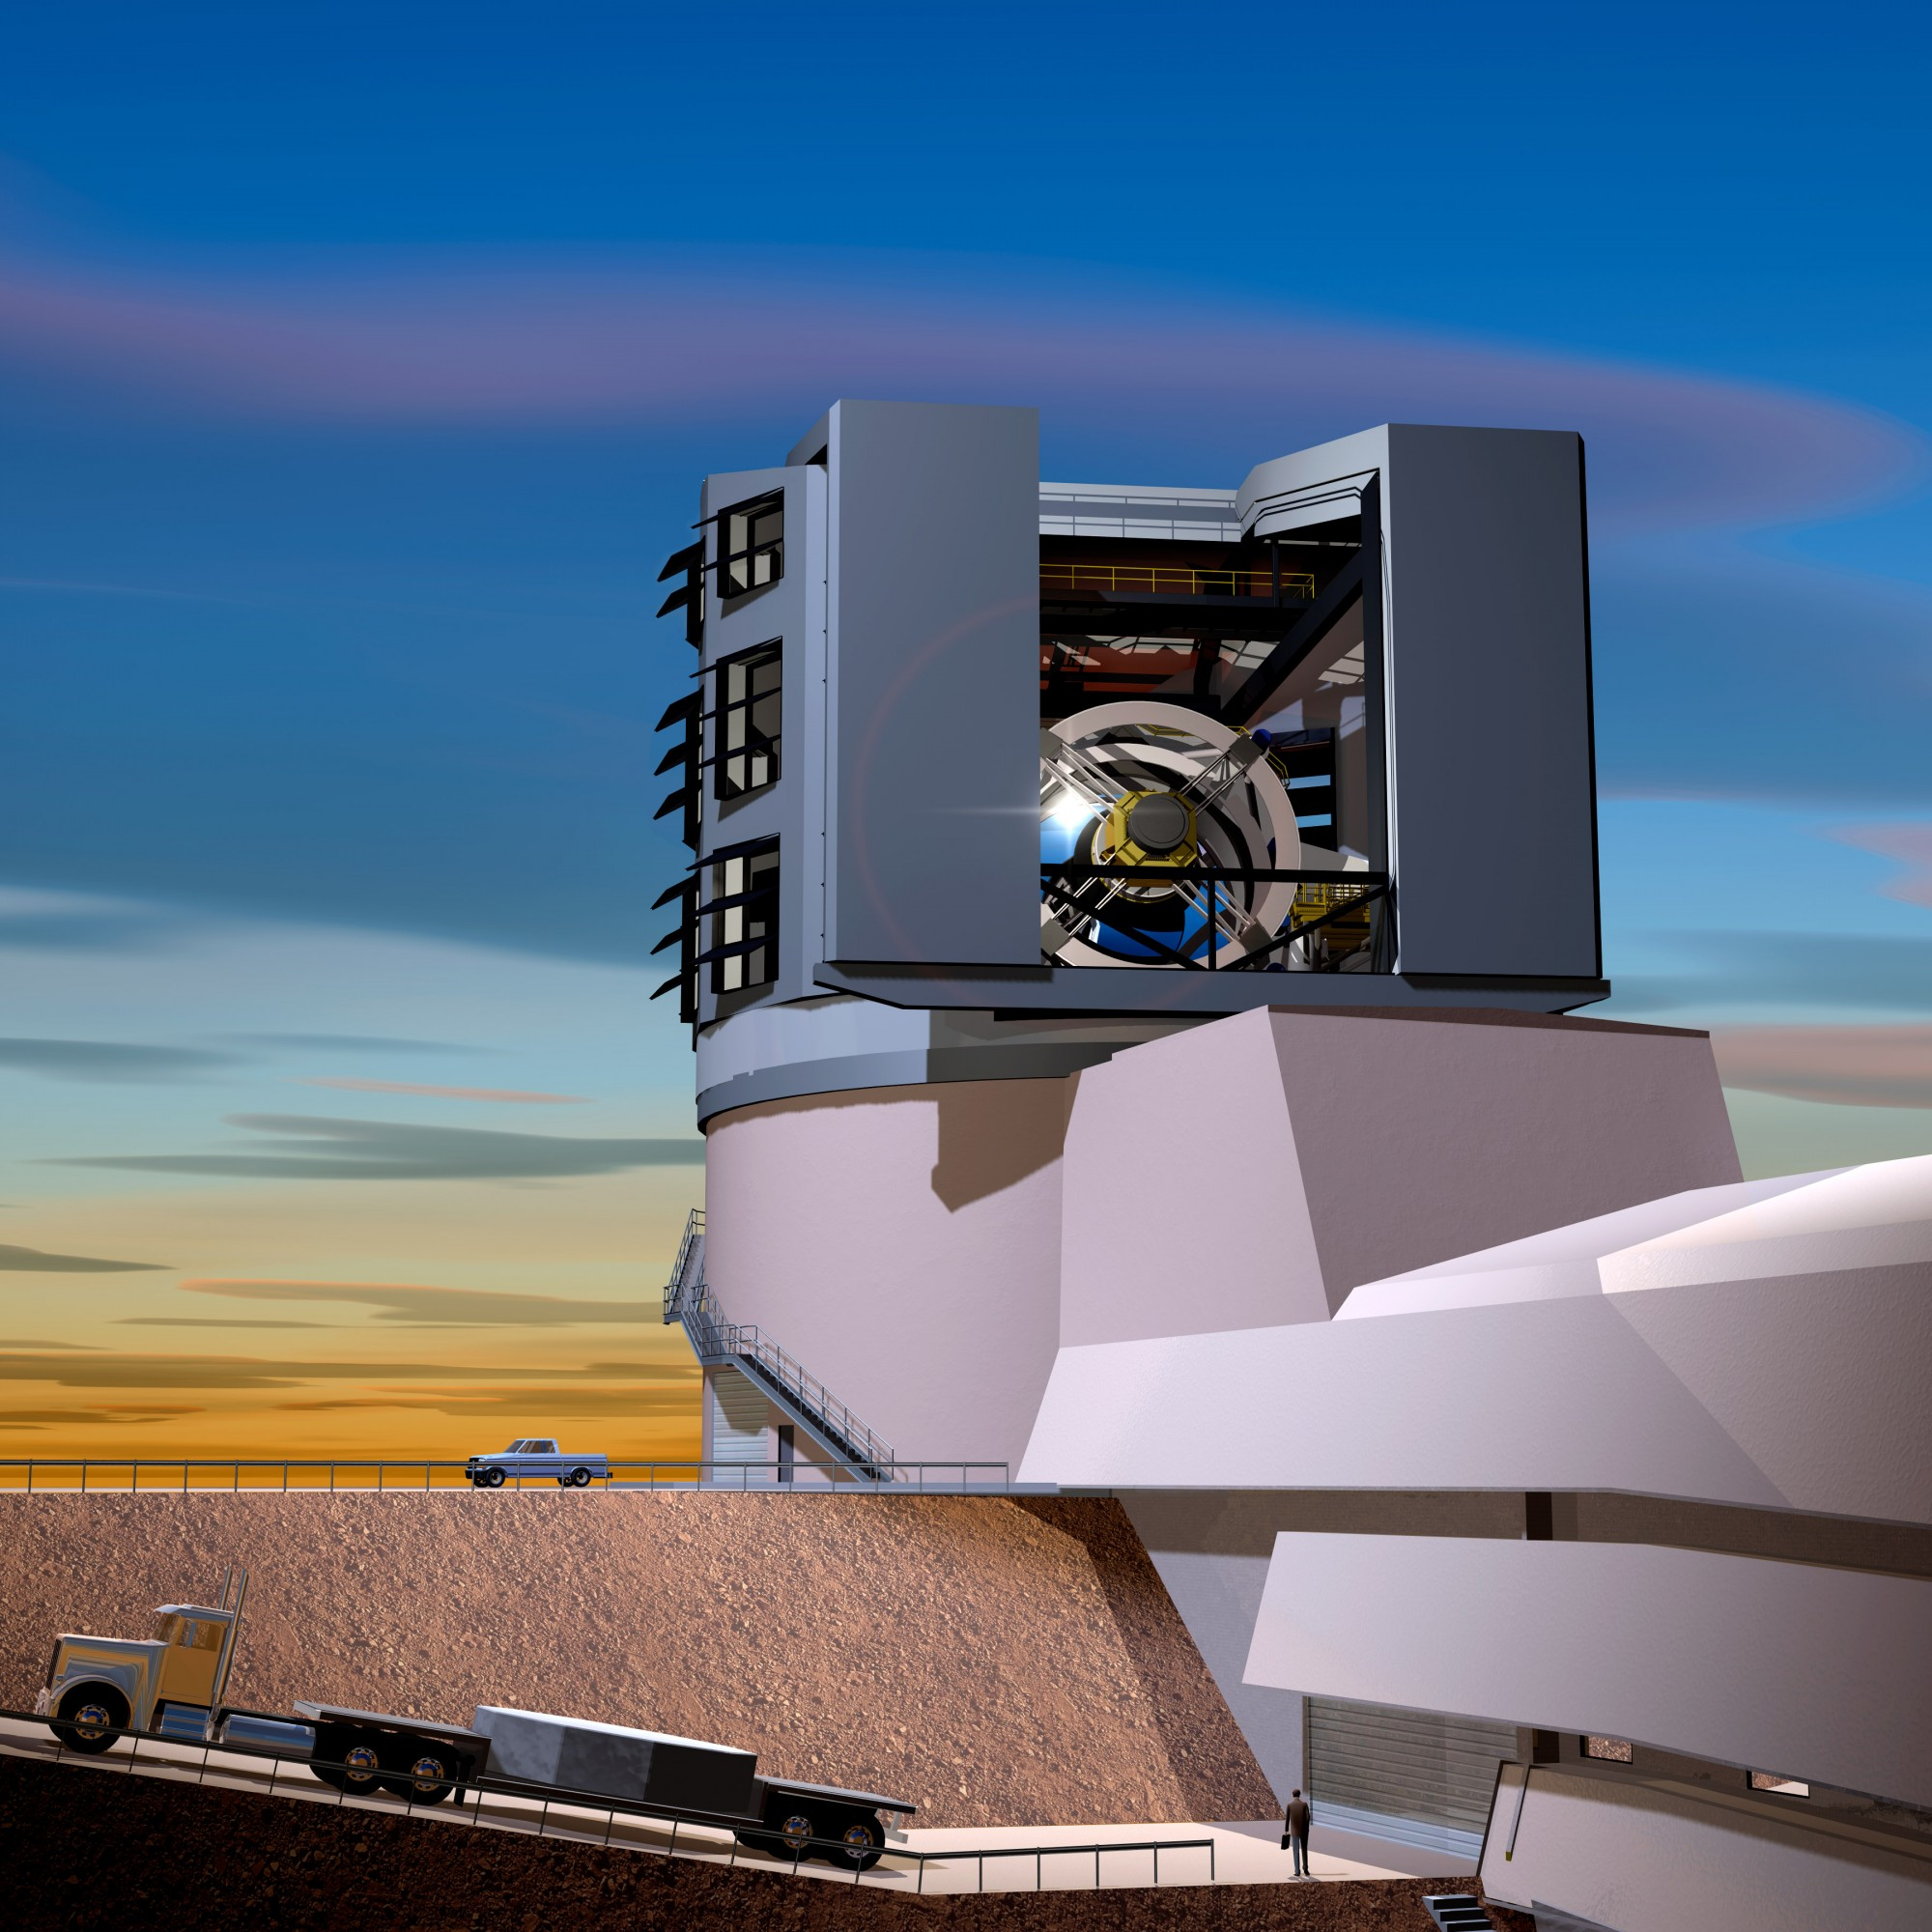 In this artist's rendition, the LSST primary mirror is seen through the slit of the dome at sunset. Image: LSST